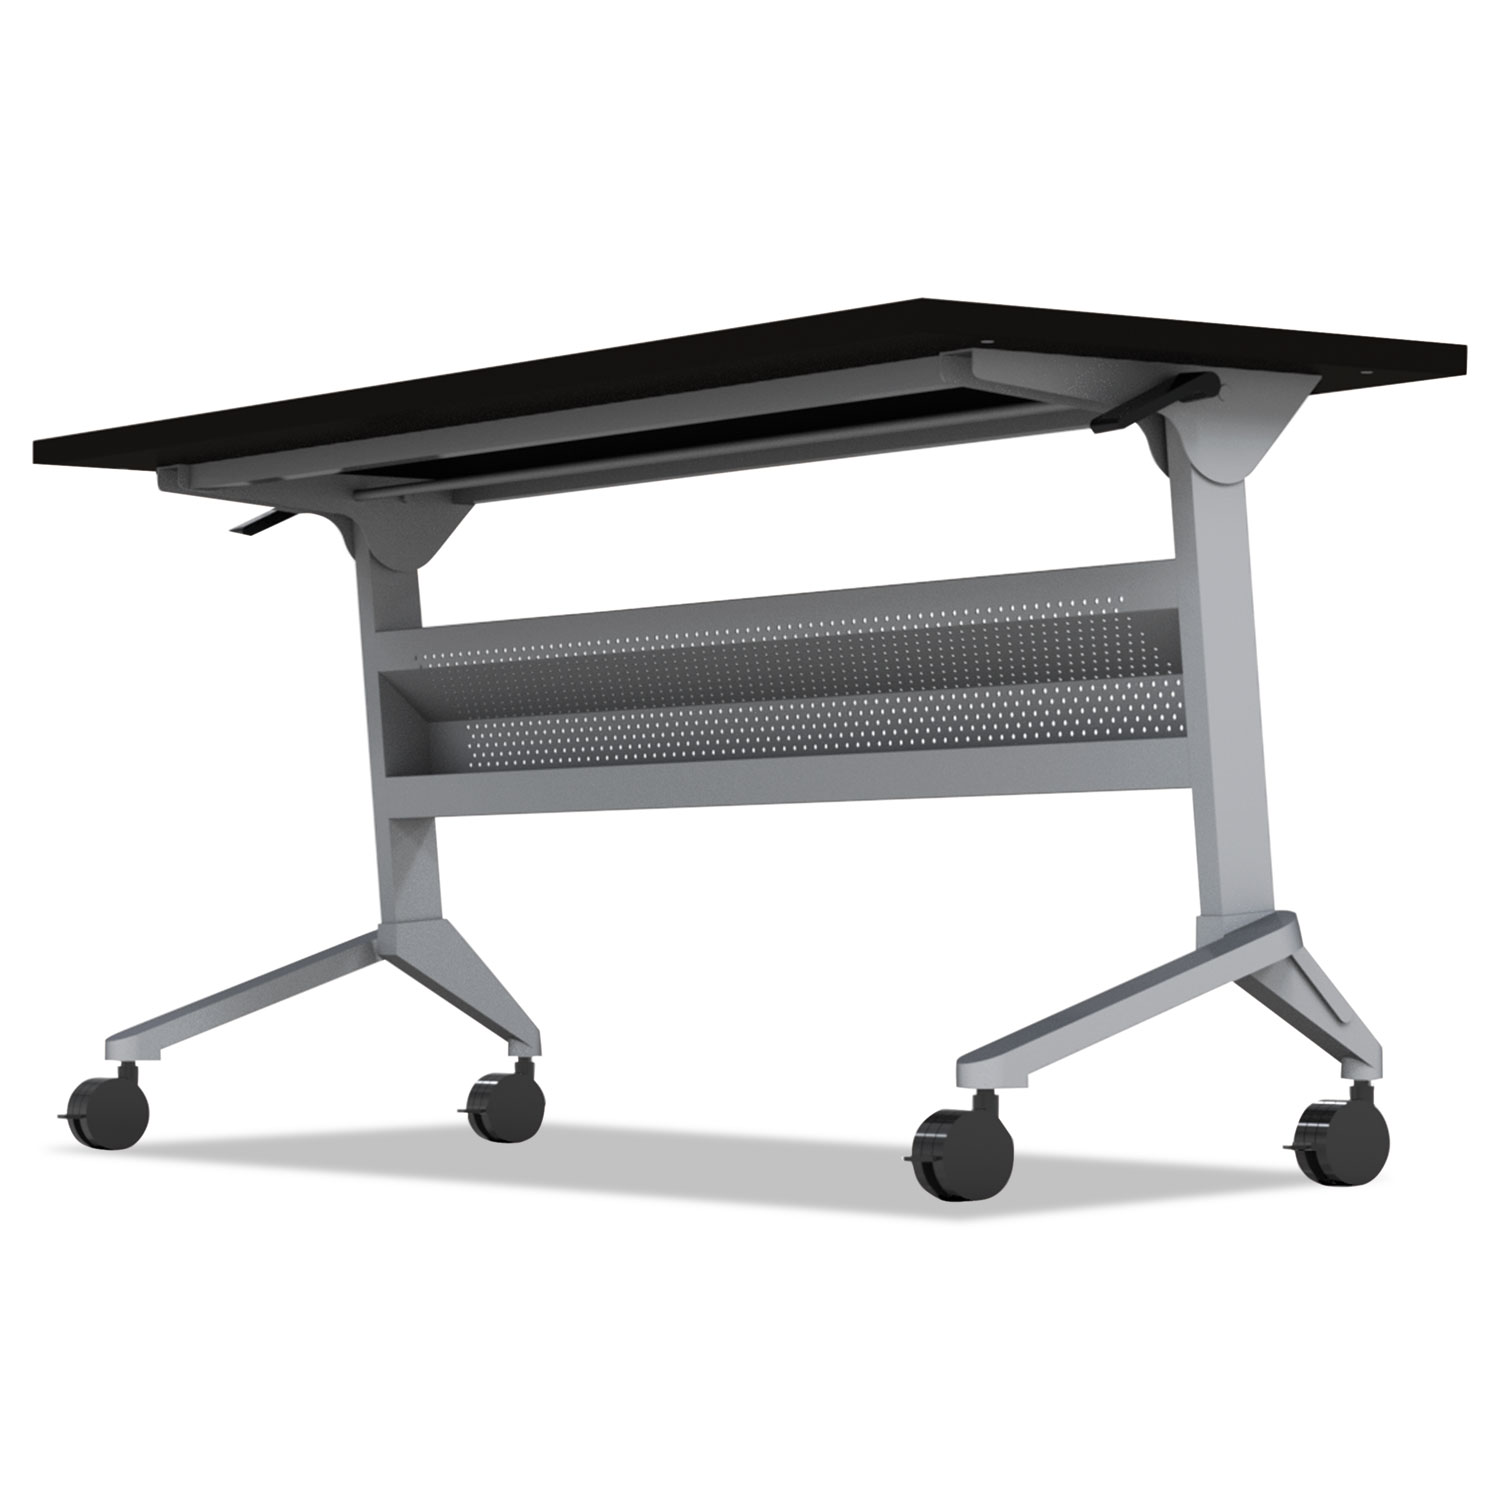 Flip-n-Go Table Base, 58 3/4w x 21 1/4d x 27 7/8h, Silver